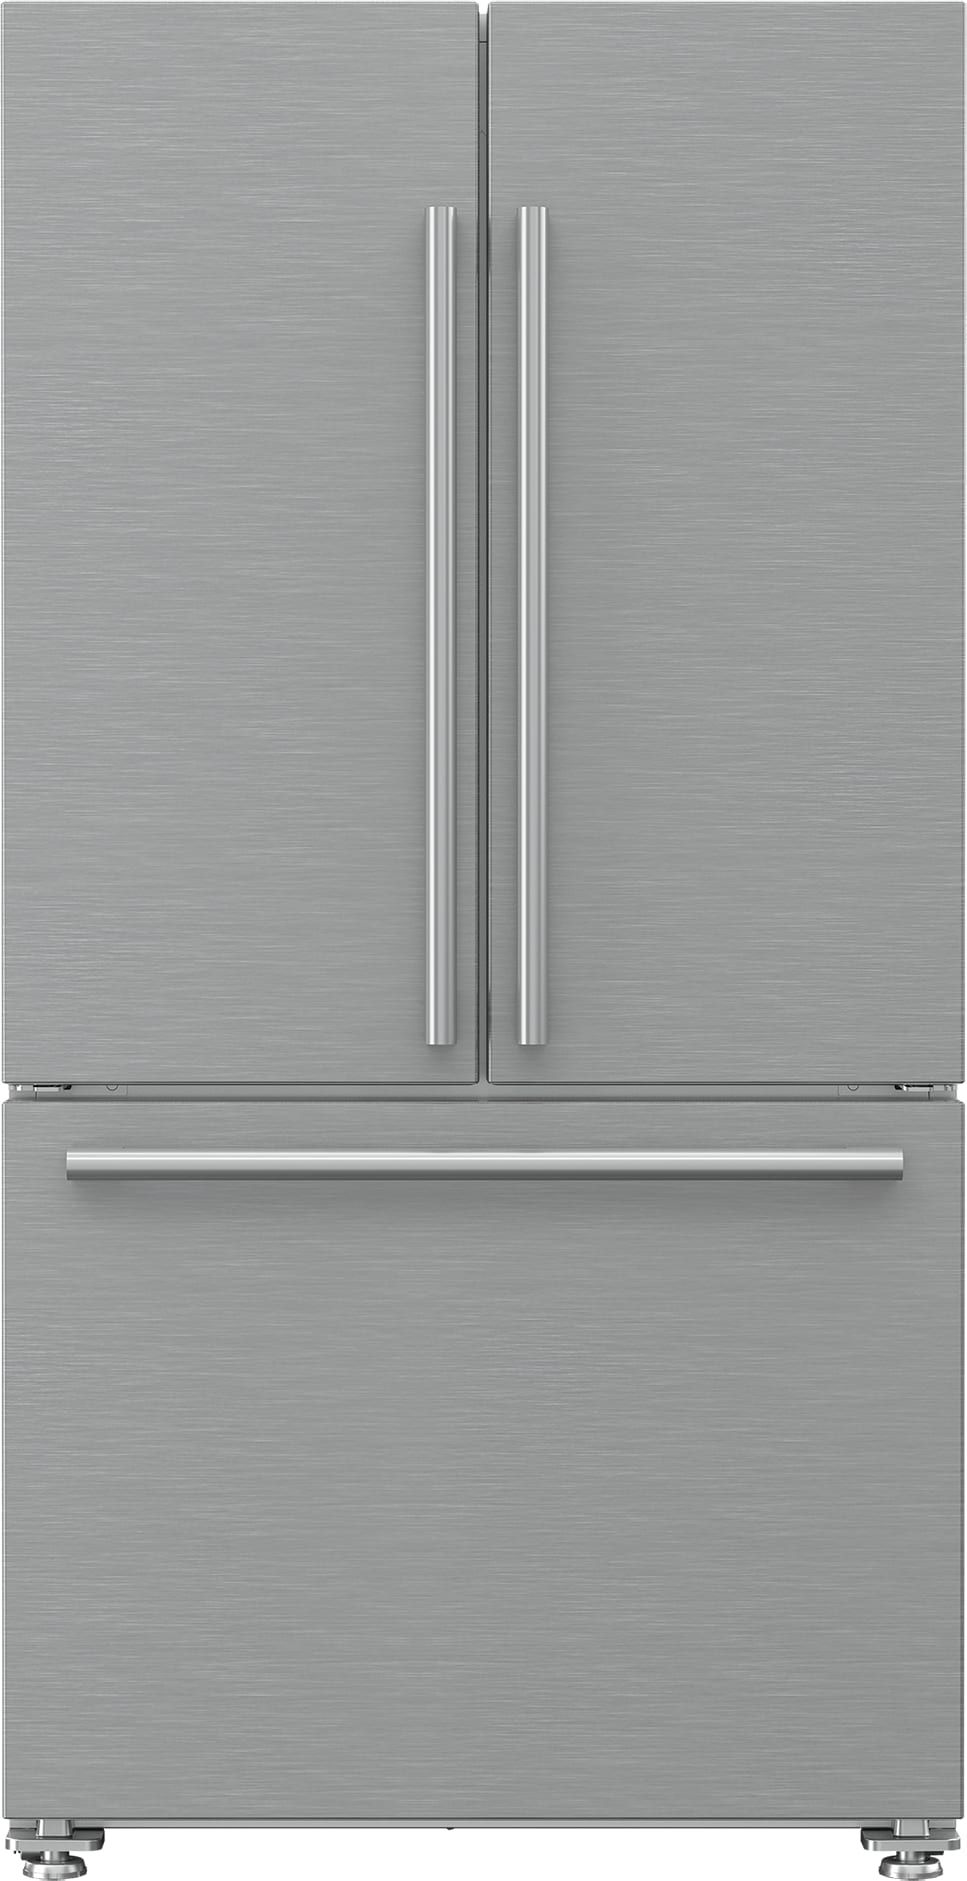 Blomberg brfdss inch counter depth french door refrigerator